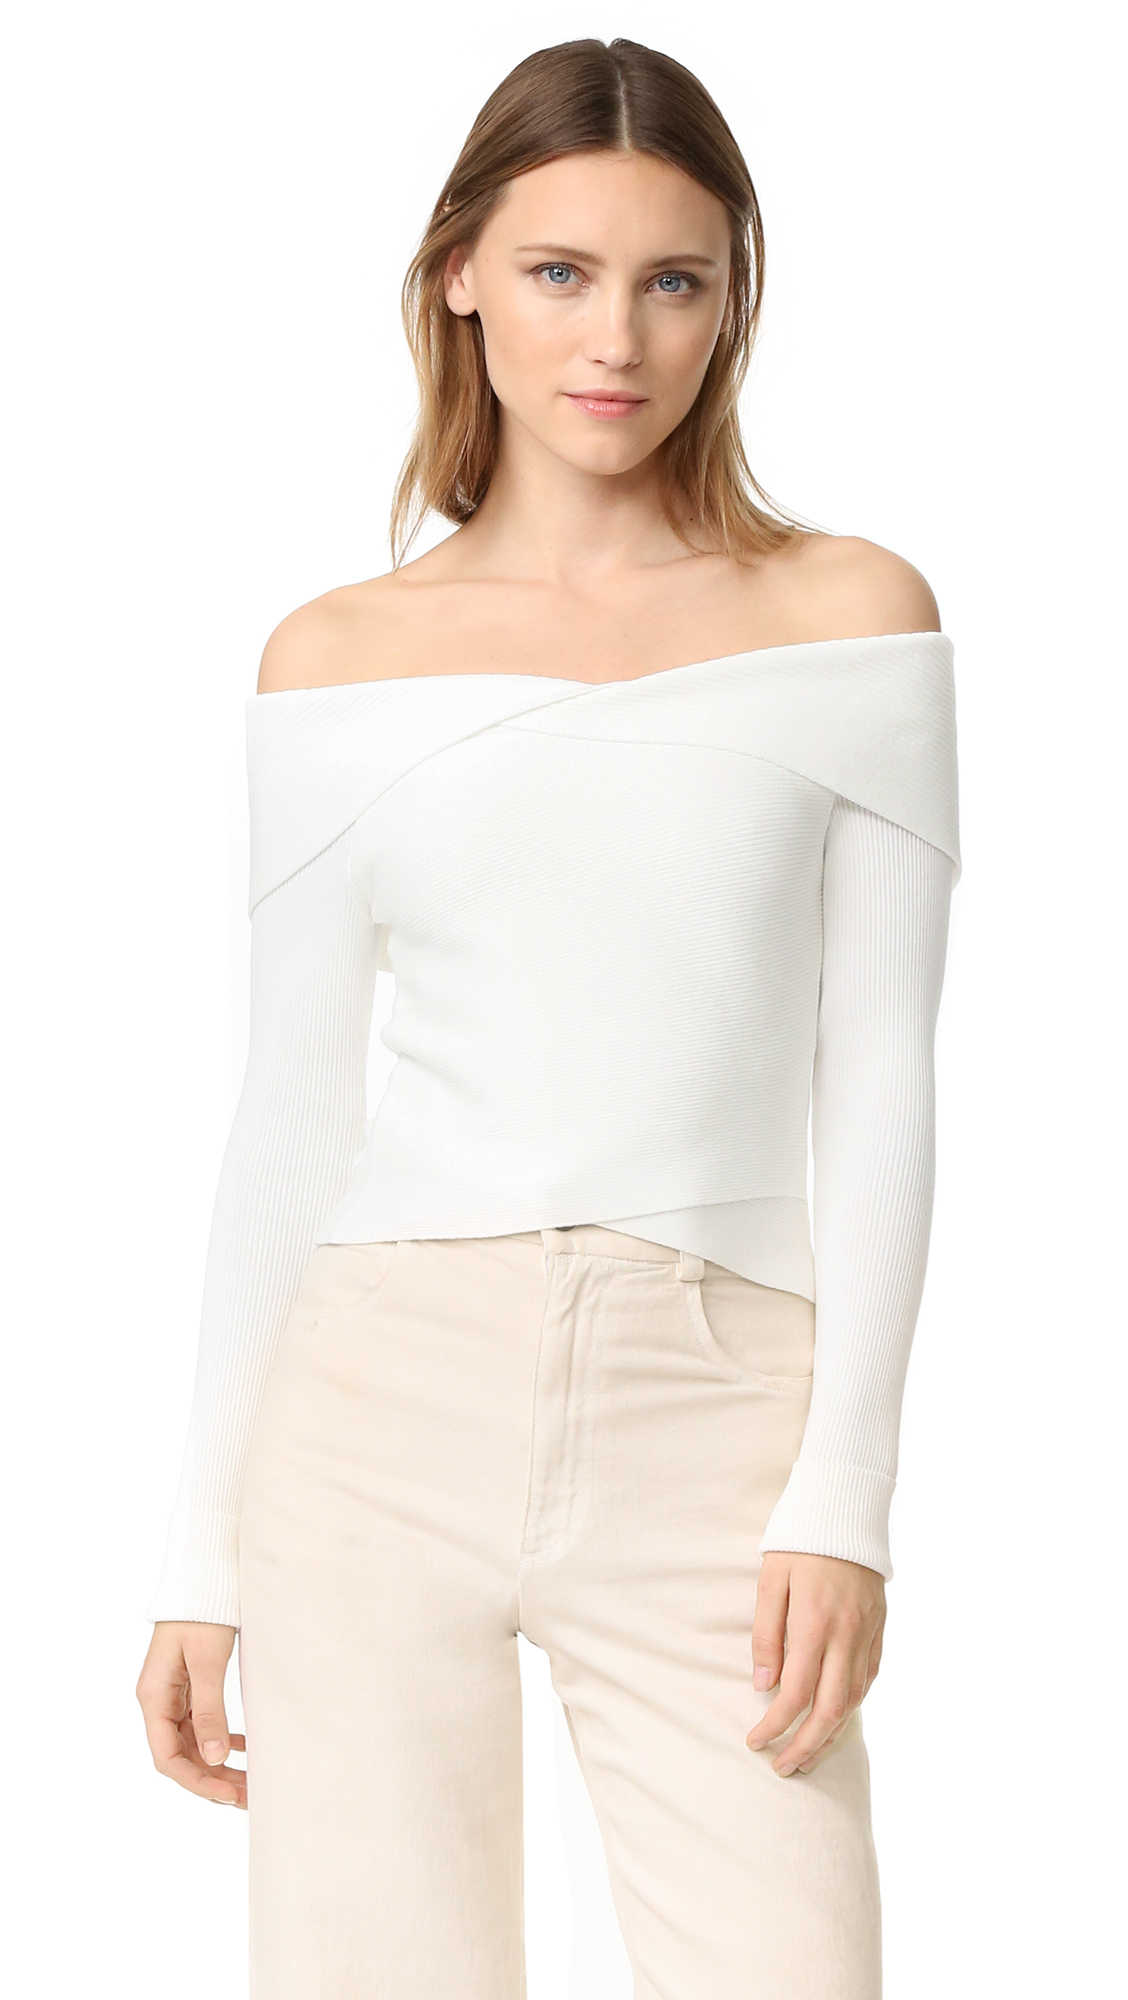 A.L.C. Rayne Sweater - White at Shopbop